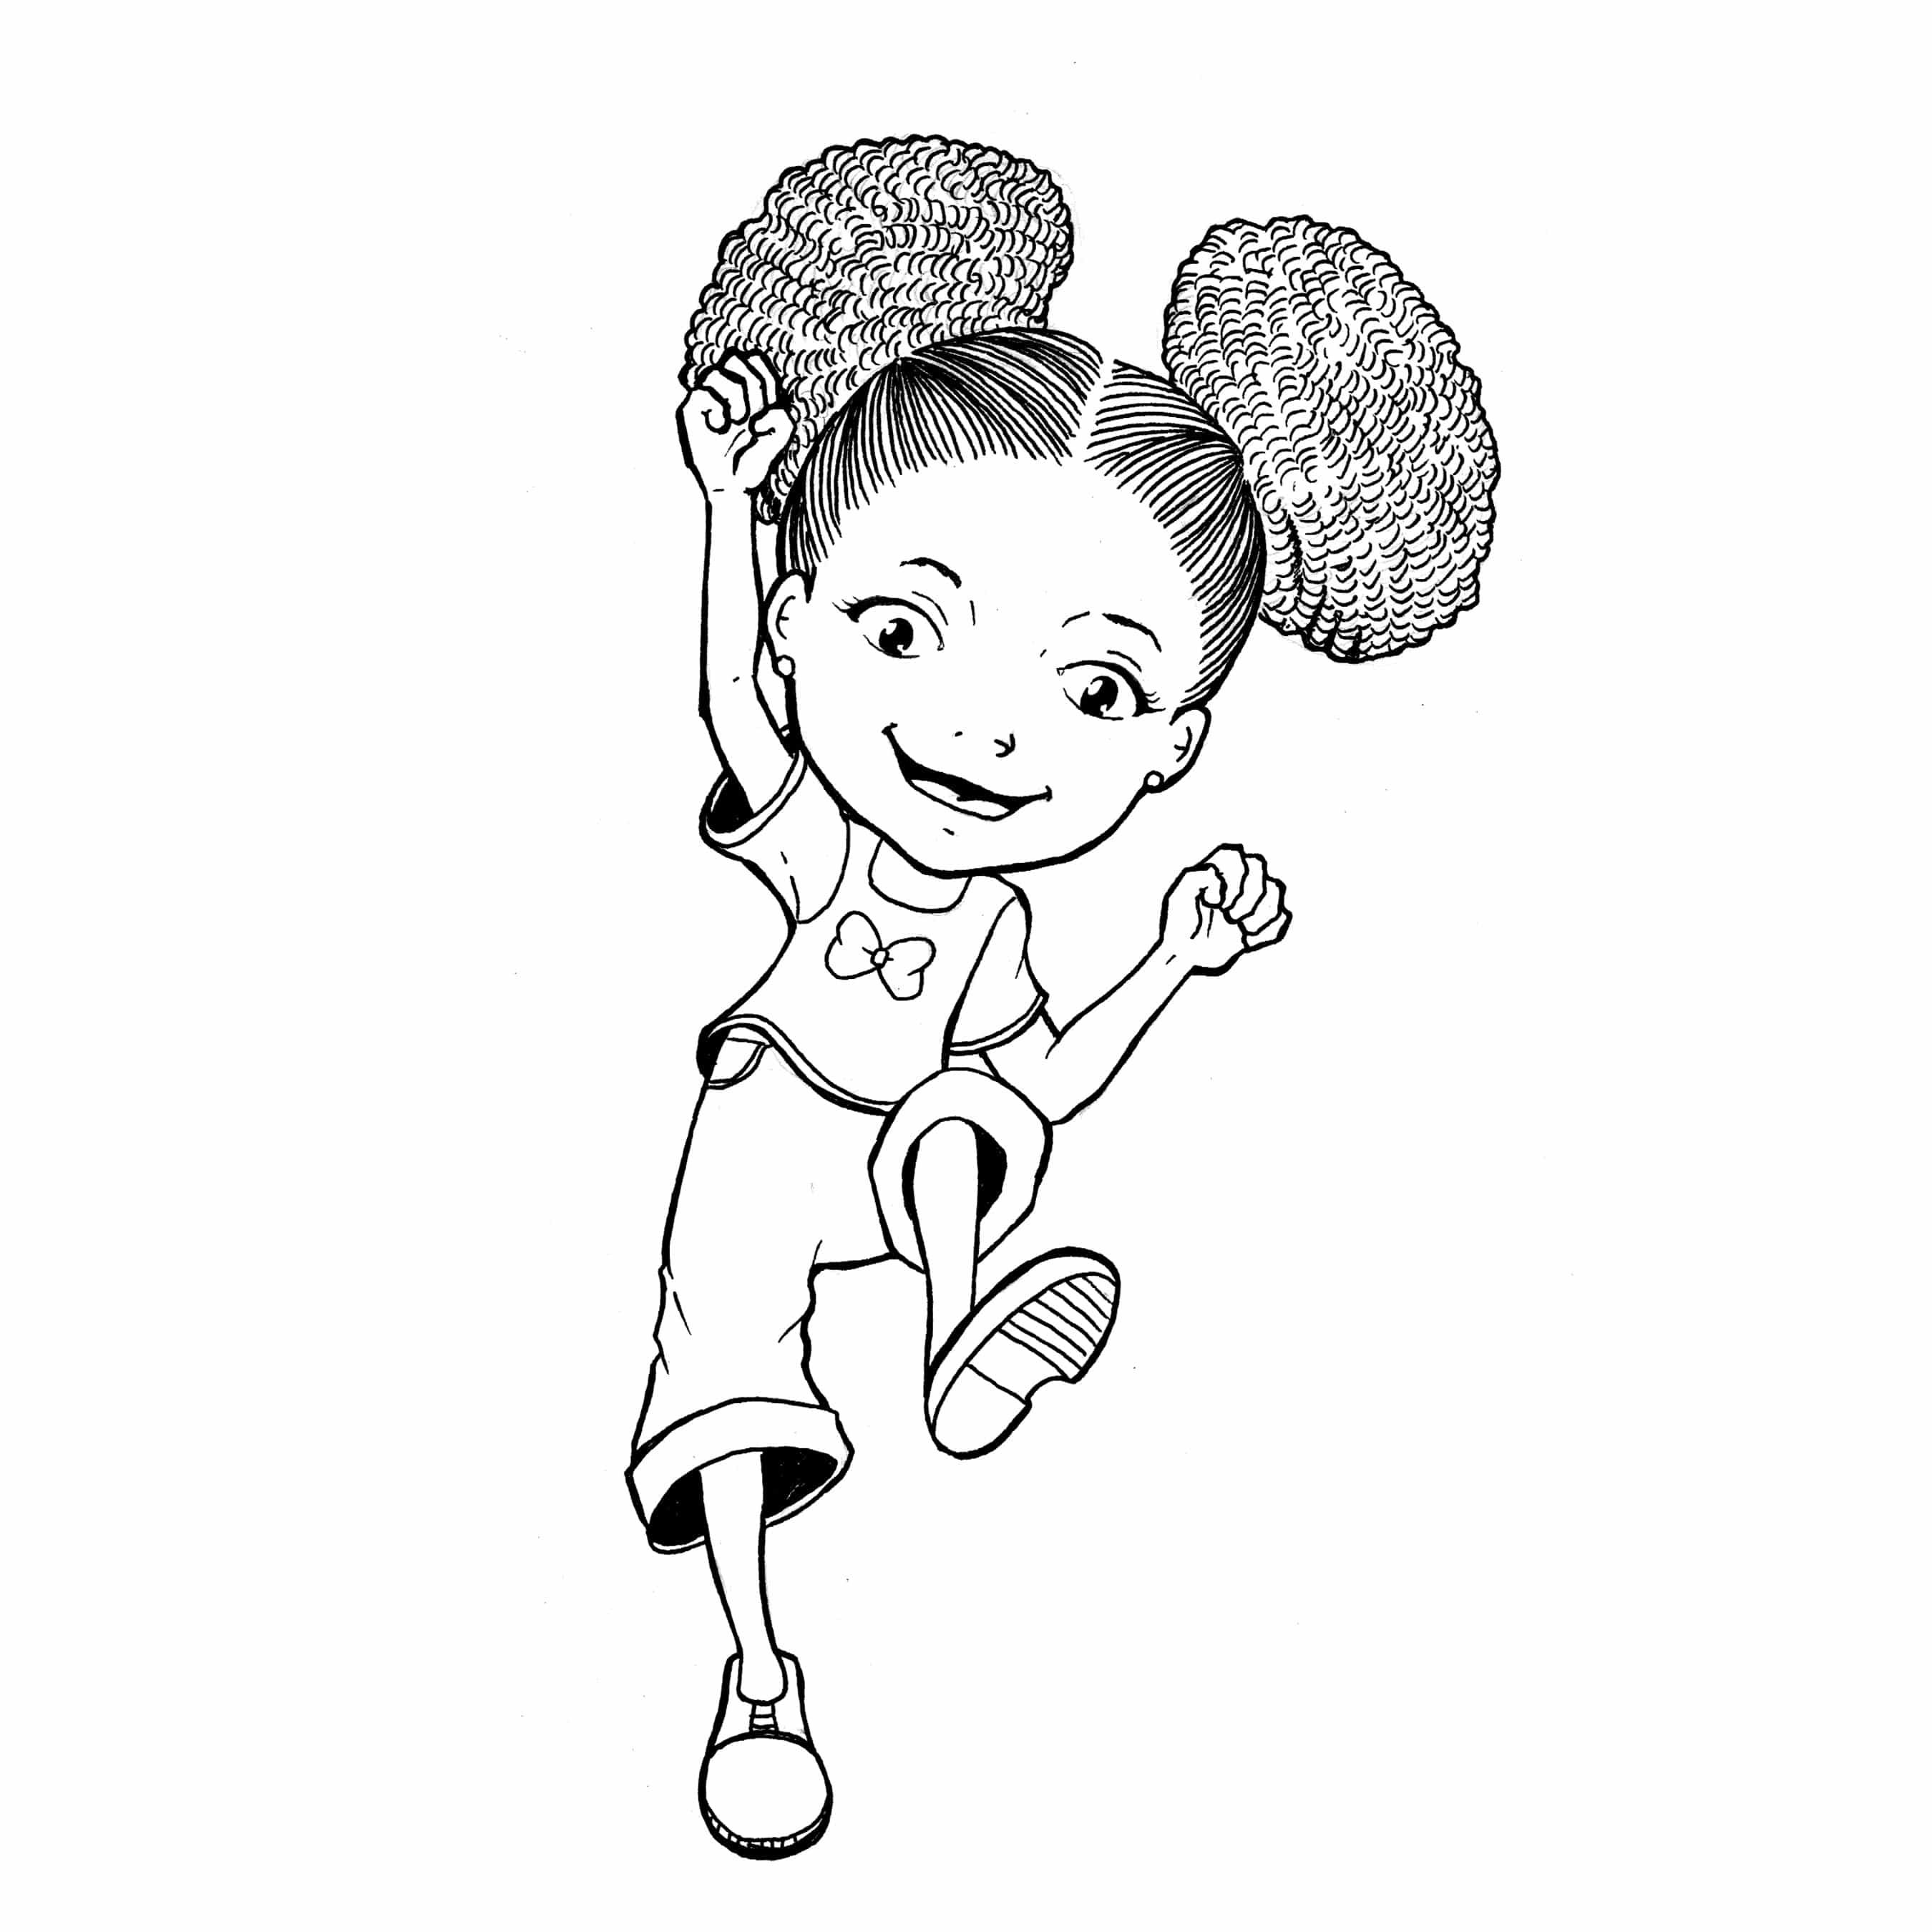 2700x2700 Coloring Page Girl With Curly Hair Zari